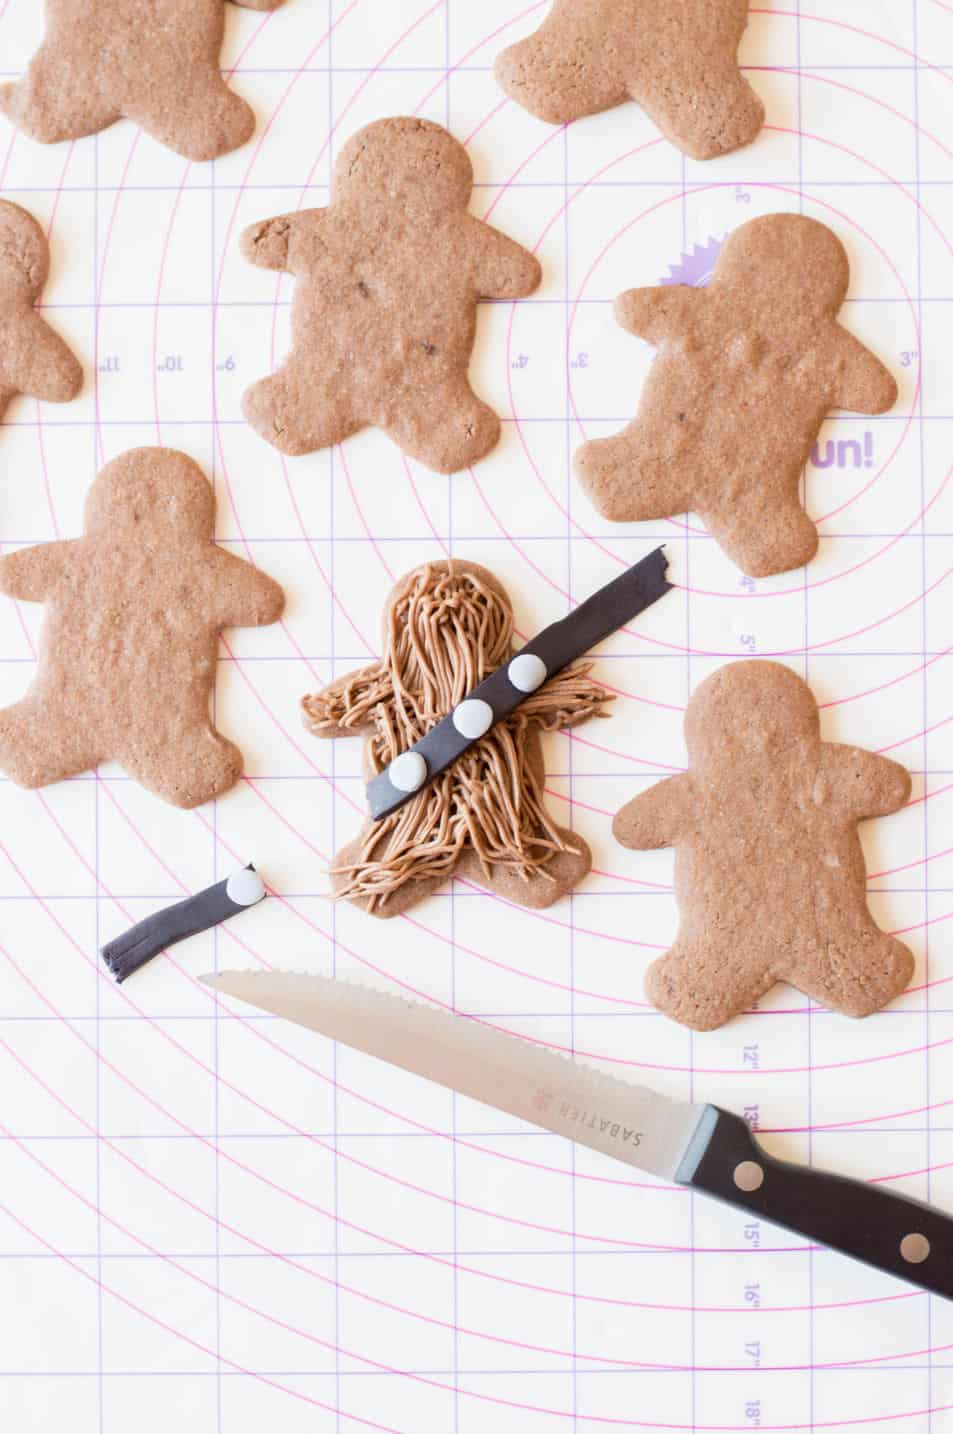 Adding the belt to the Wookie Cookies